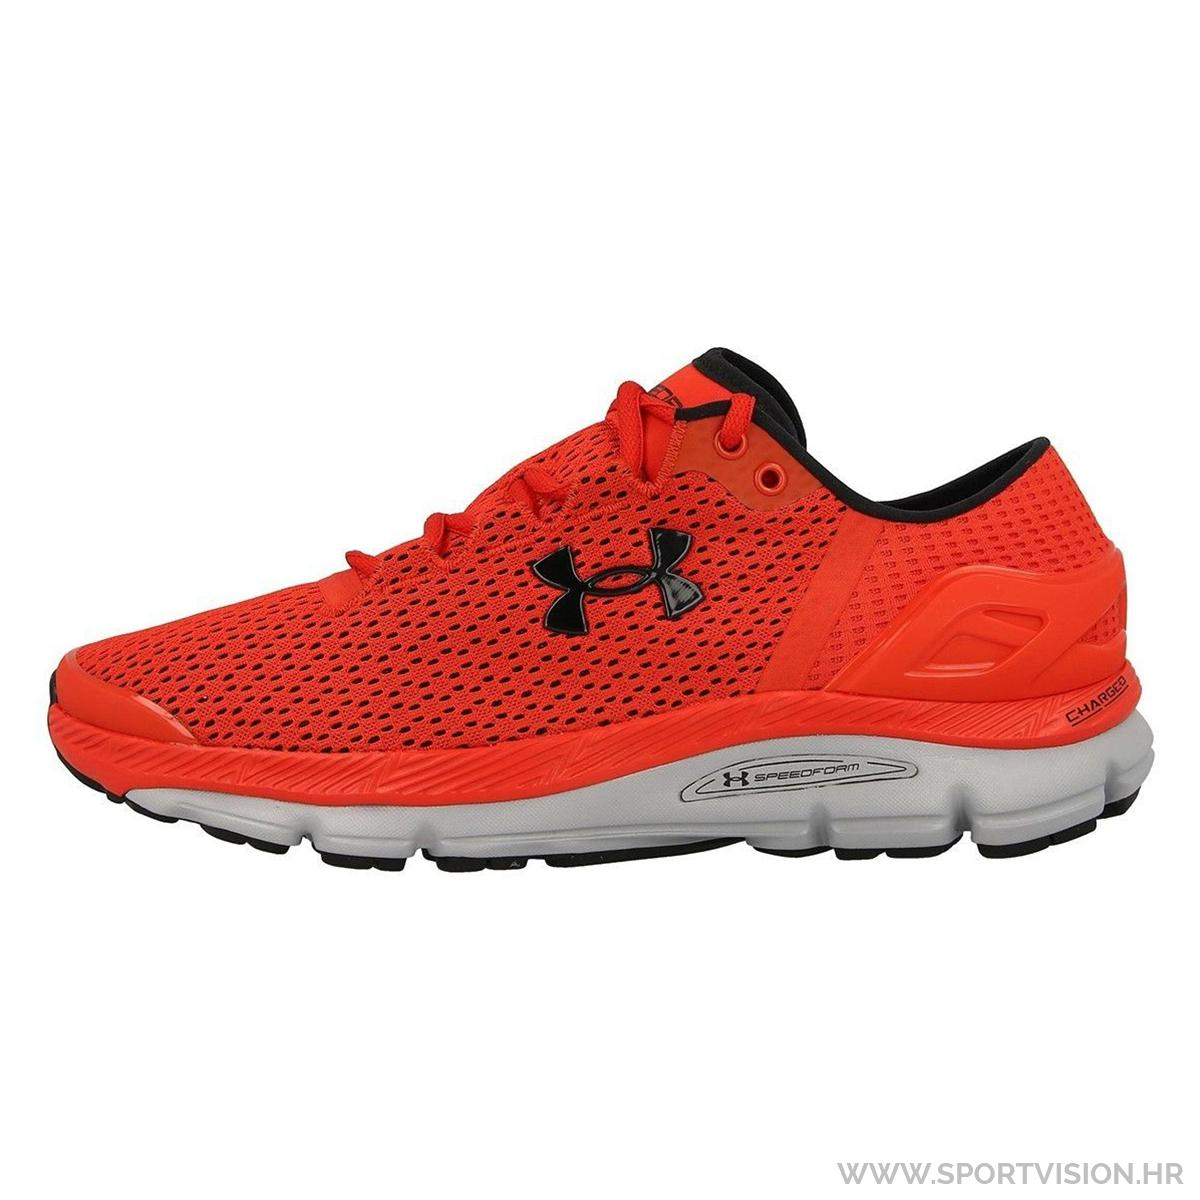 UNDER ARMOUR tenisice SPEEDFORM INTAKE 2